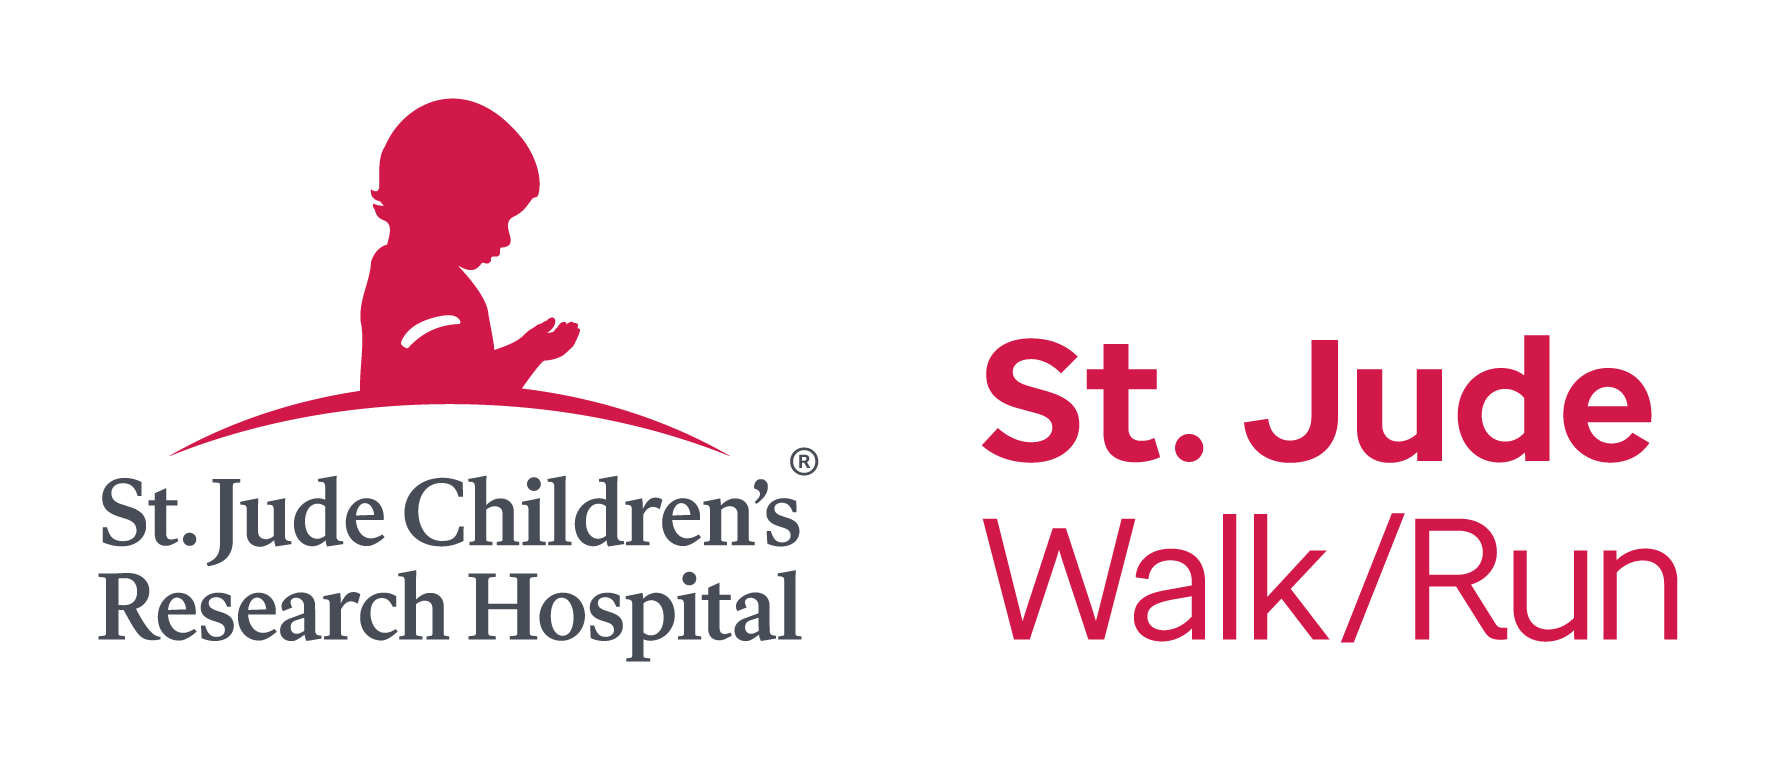 St. Jude Walk Run Logo